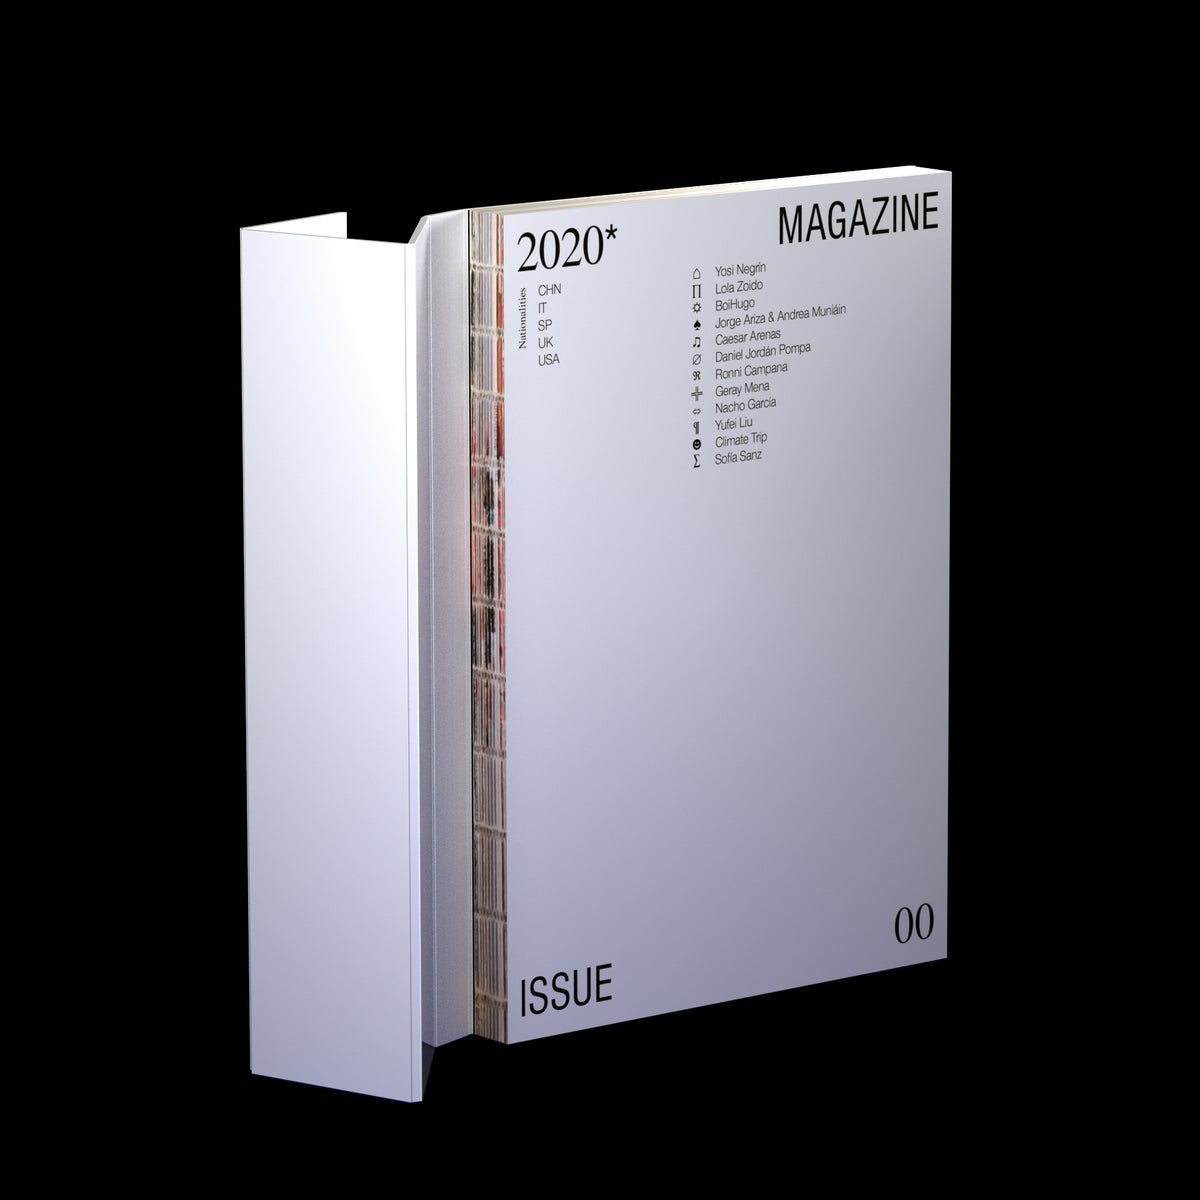 Issue 0